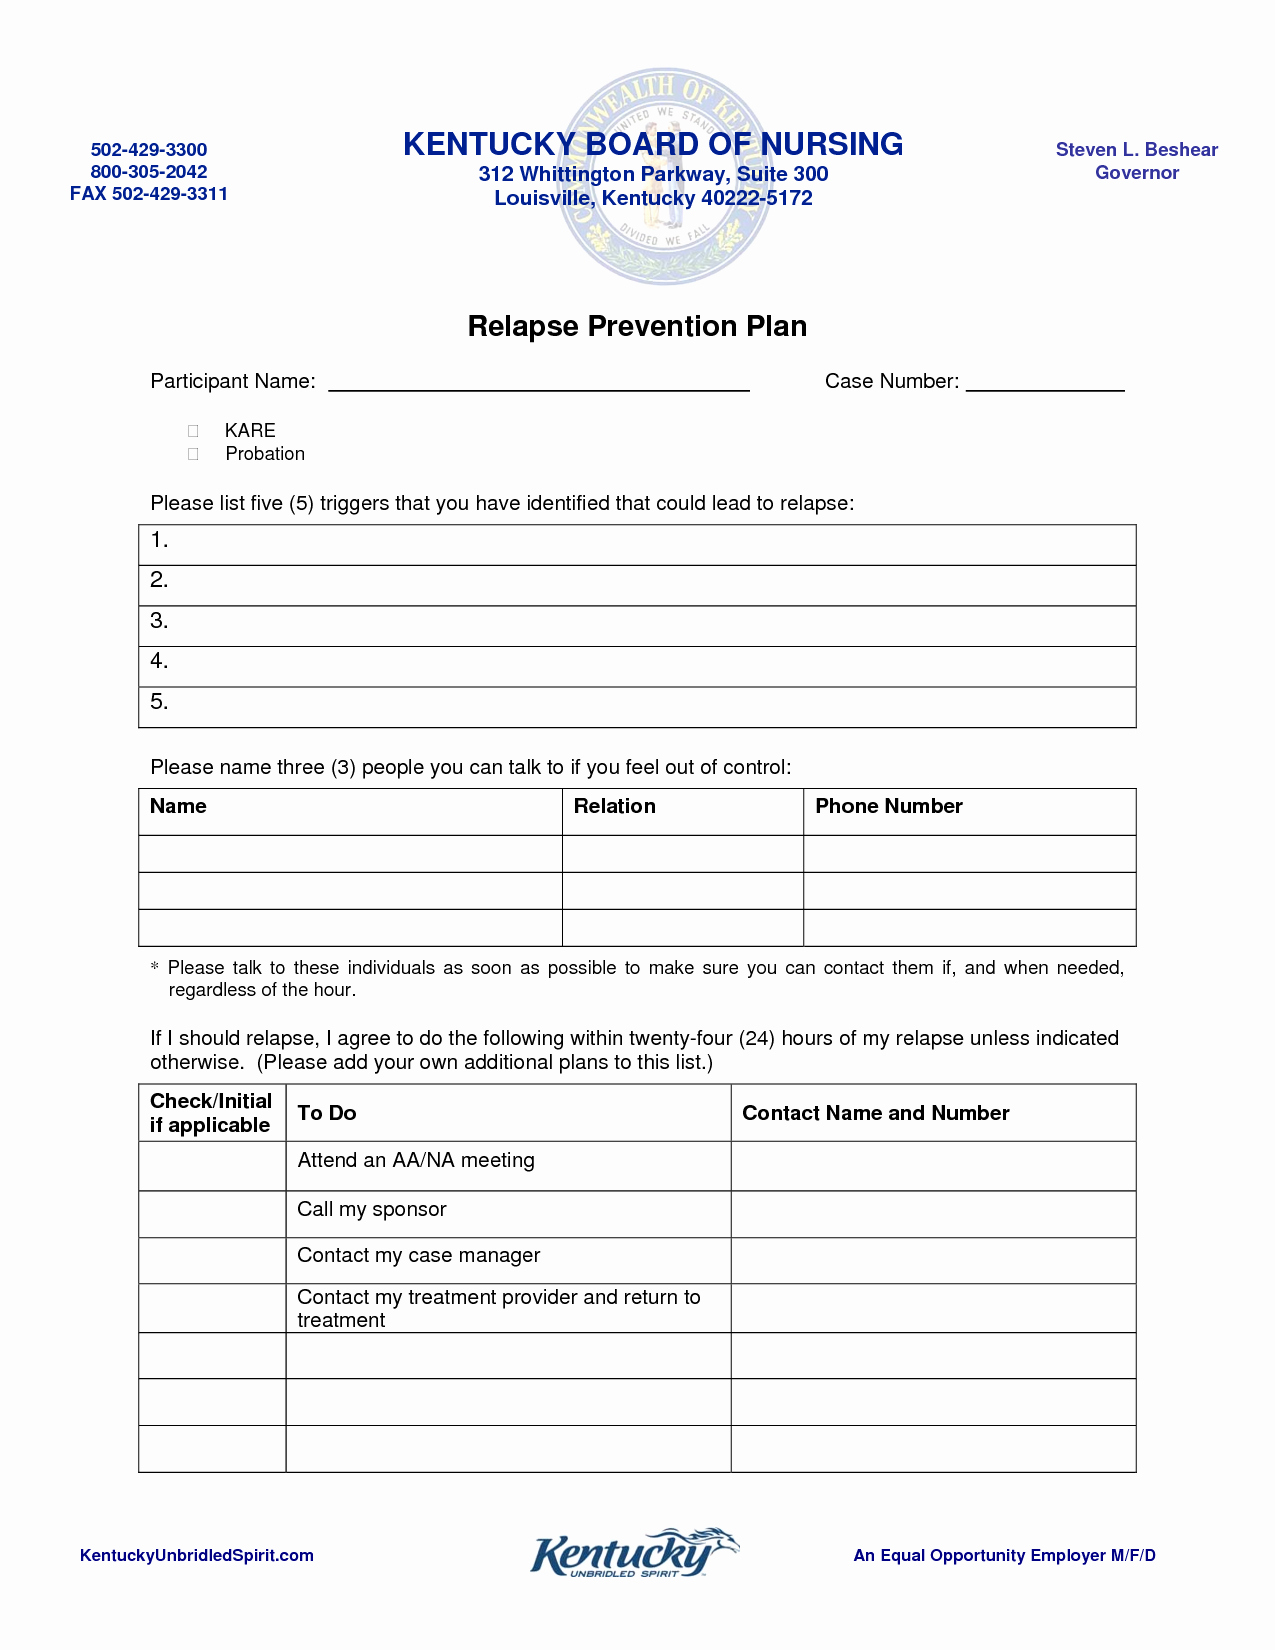 40 Relapse Prevention Plan Template